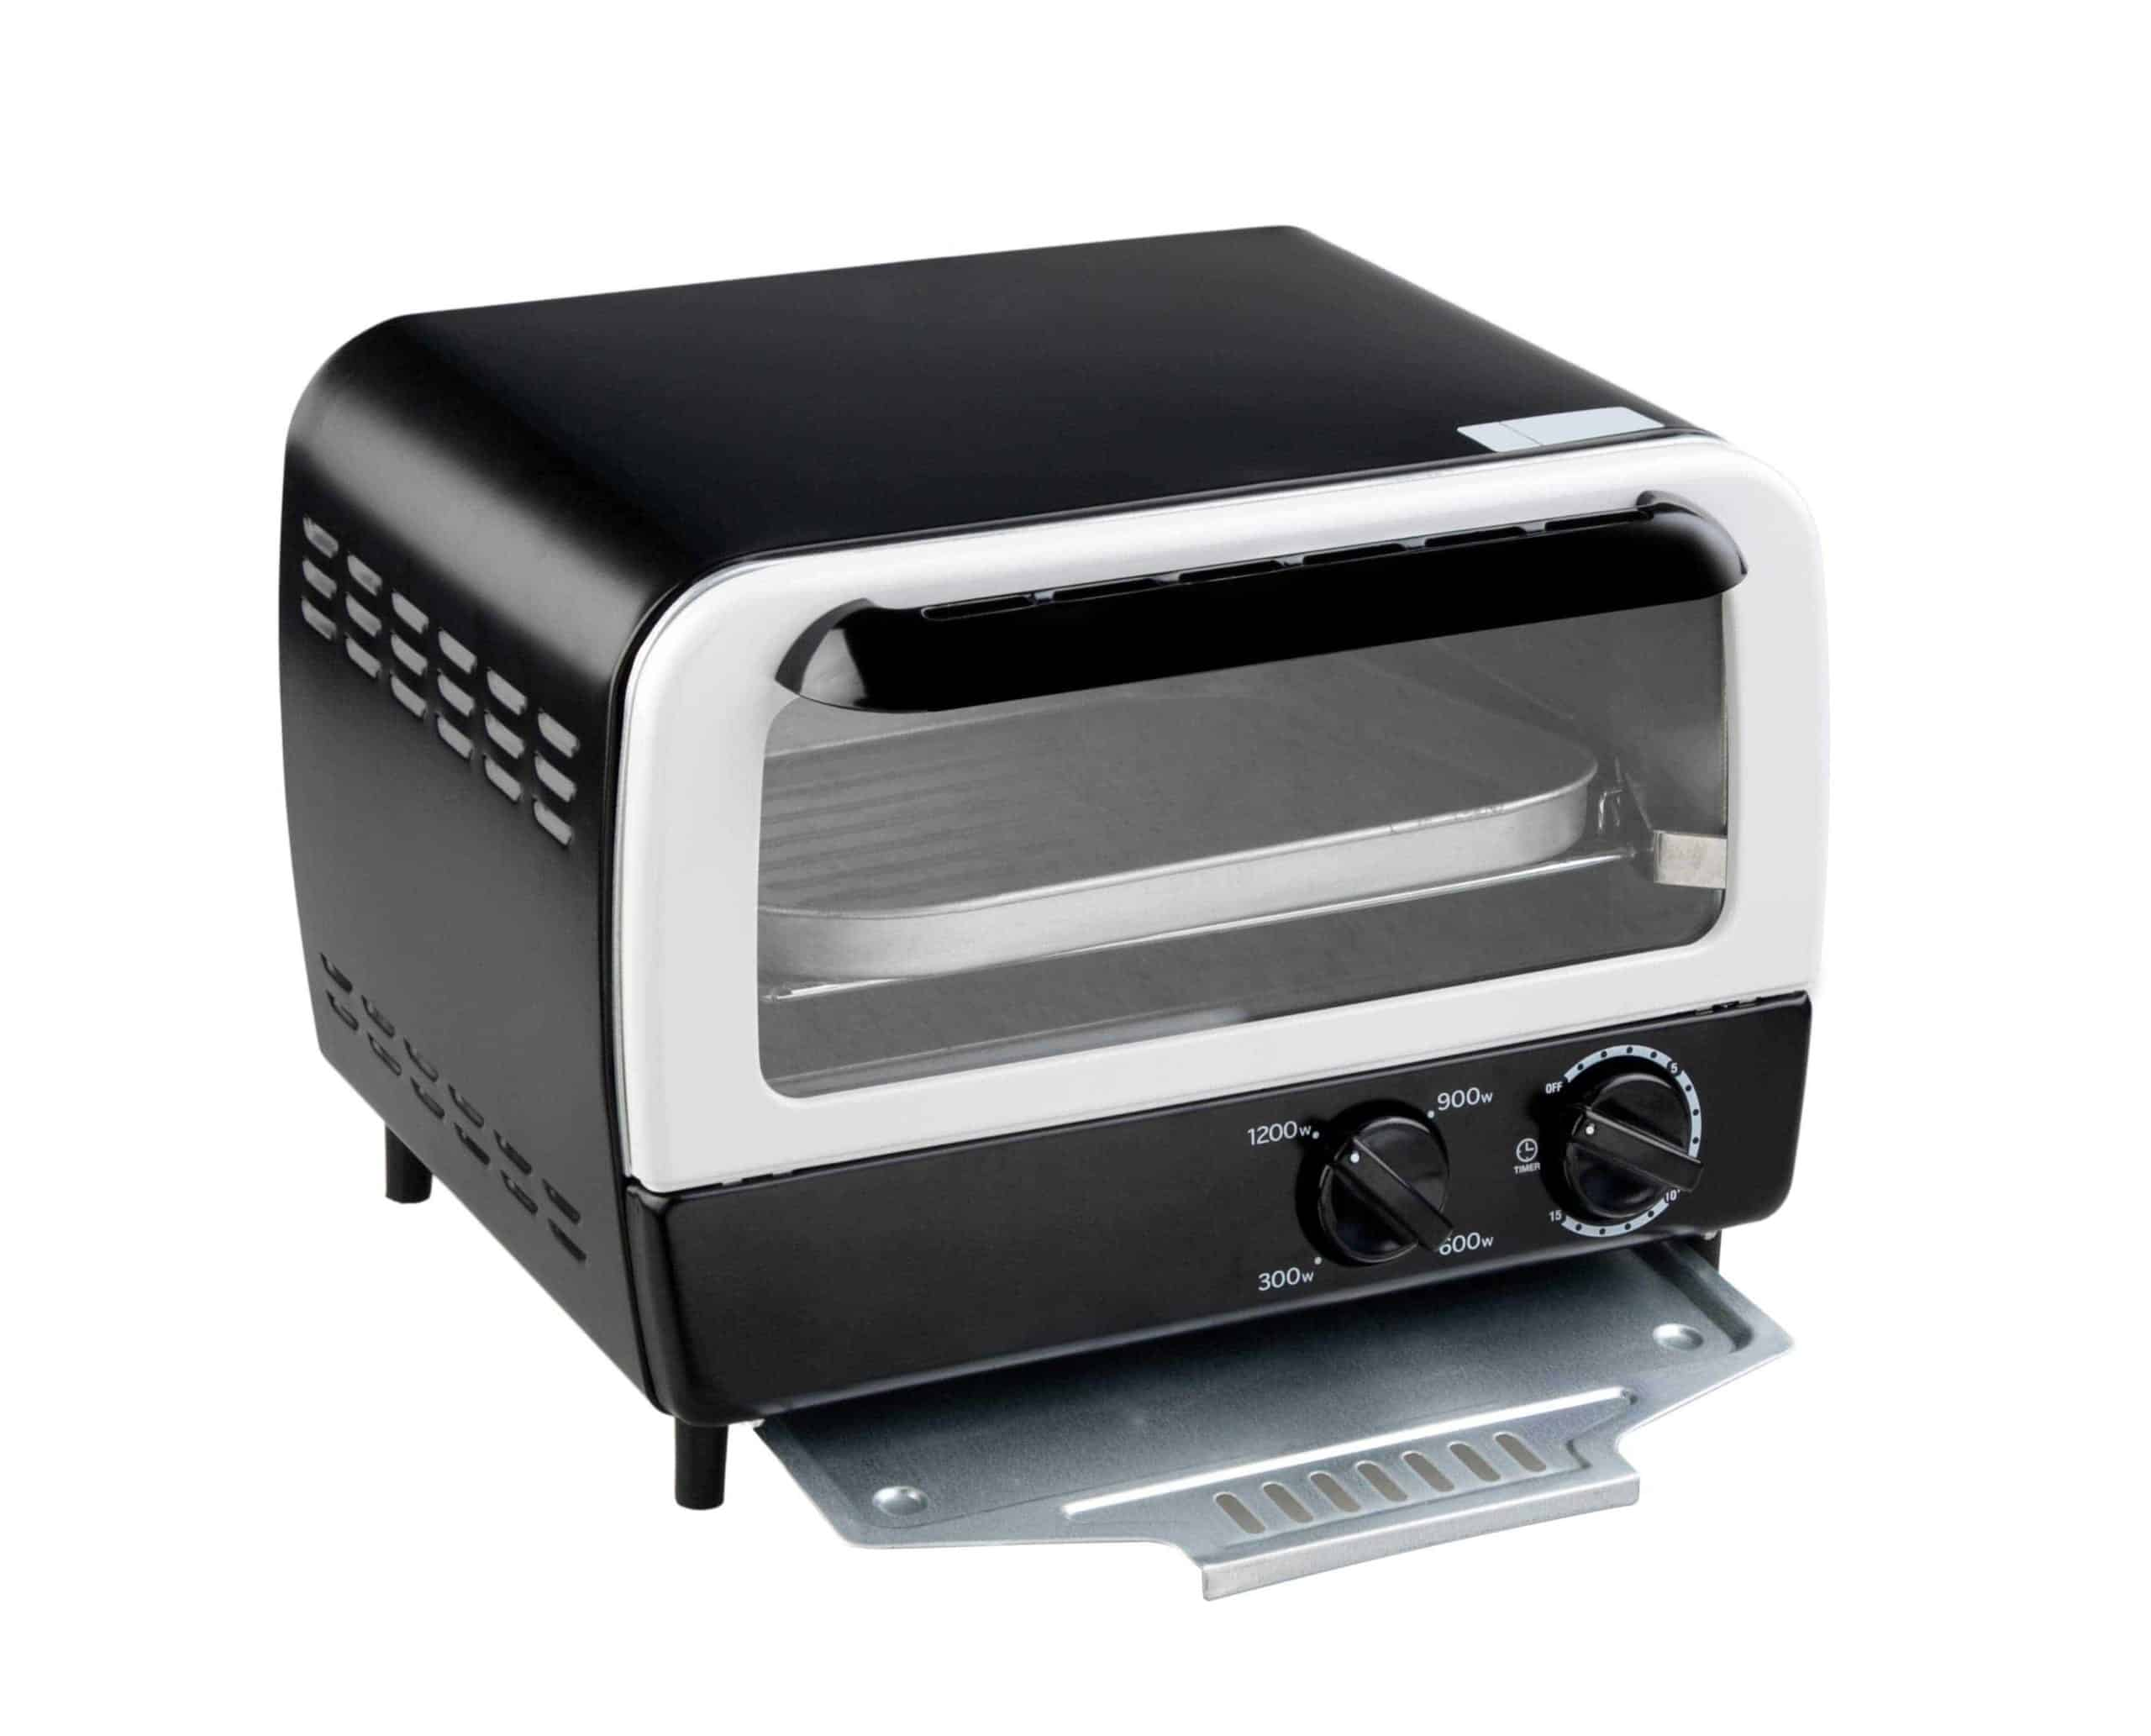 toaster ovens have little insulation